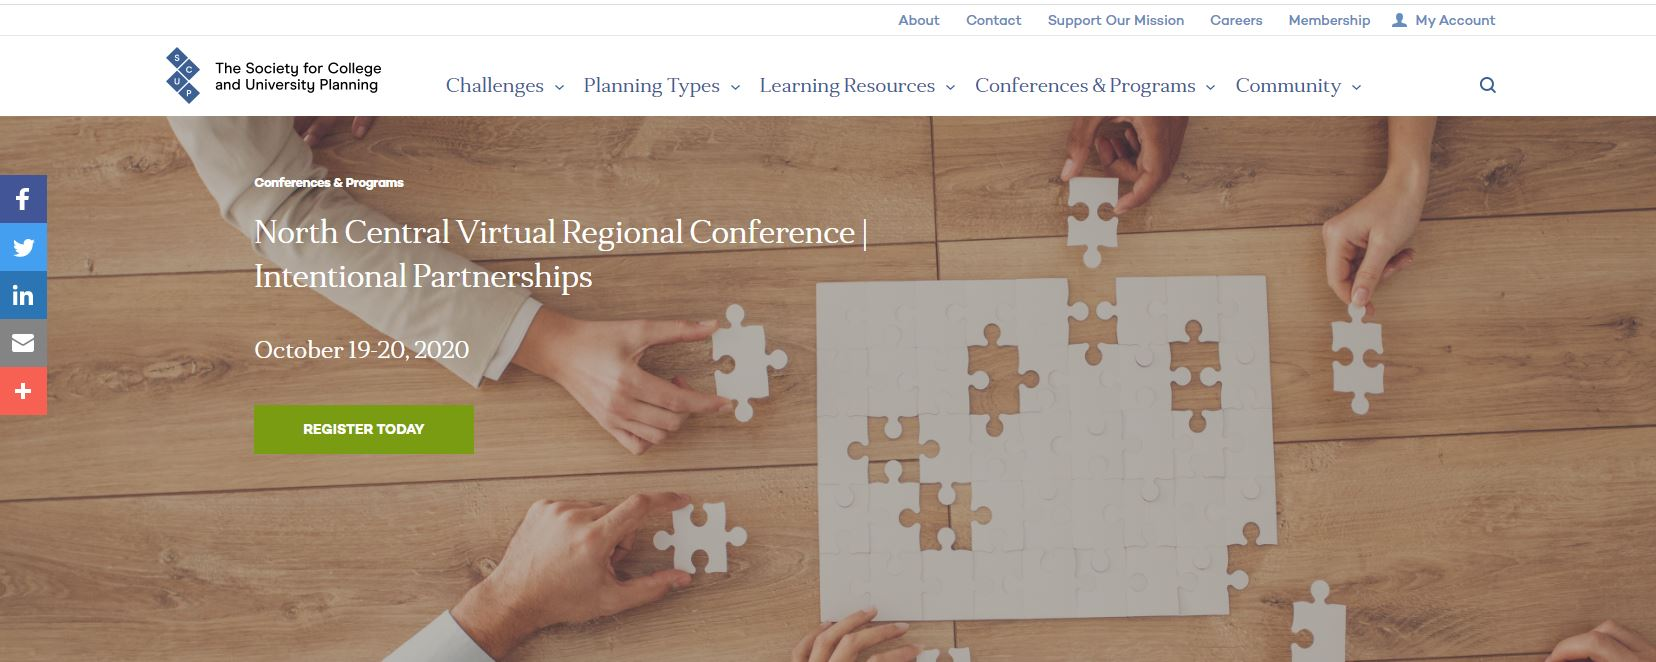 Visit the SCUP North Central Virtual Conference website for more details about the presentation session by Planning NEXT and Columbus State Community College